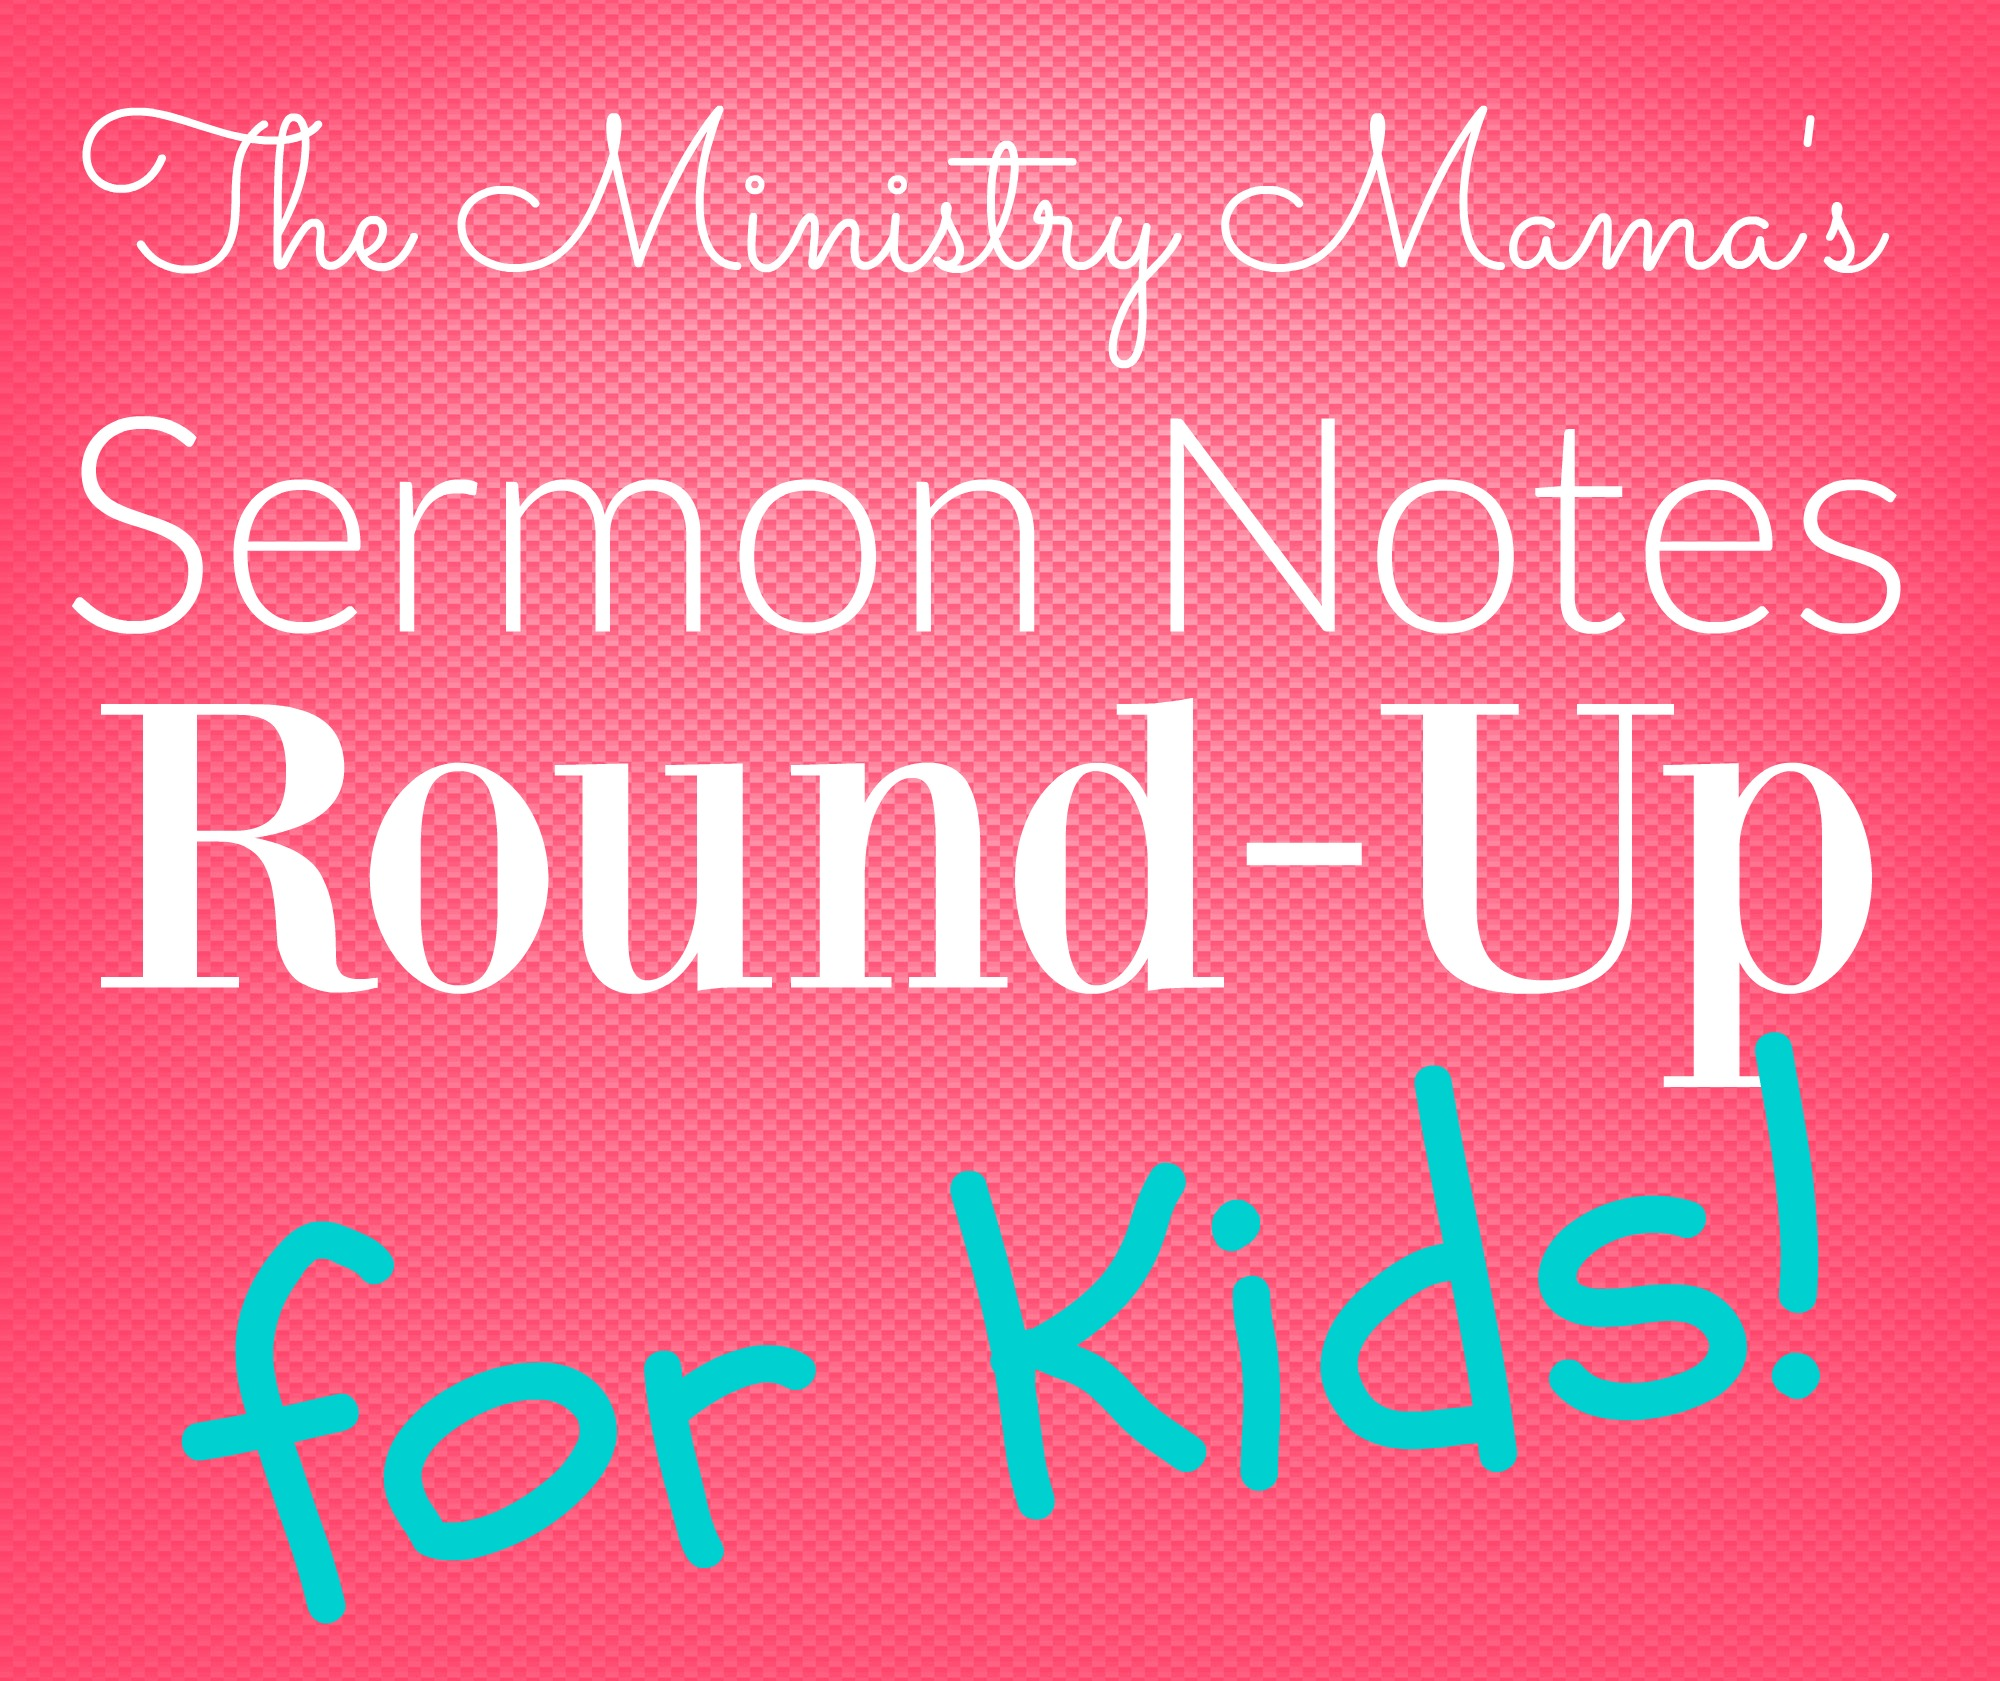 Church Puppet Skits Round-Up – The Ministry Mama